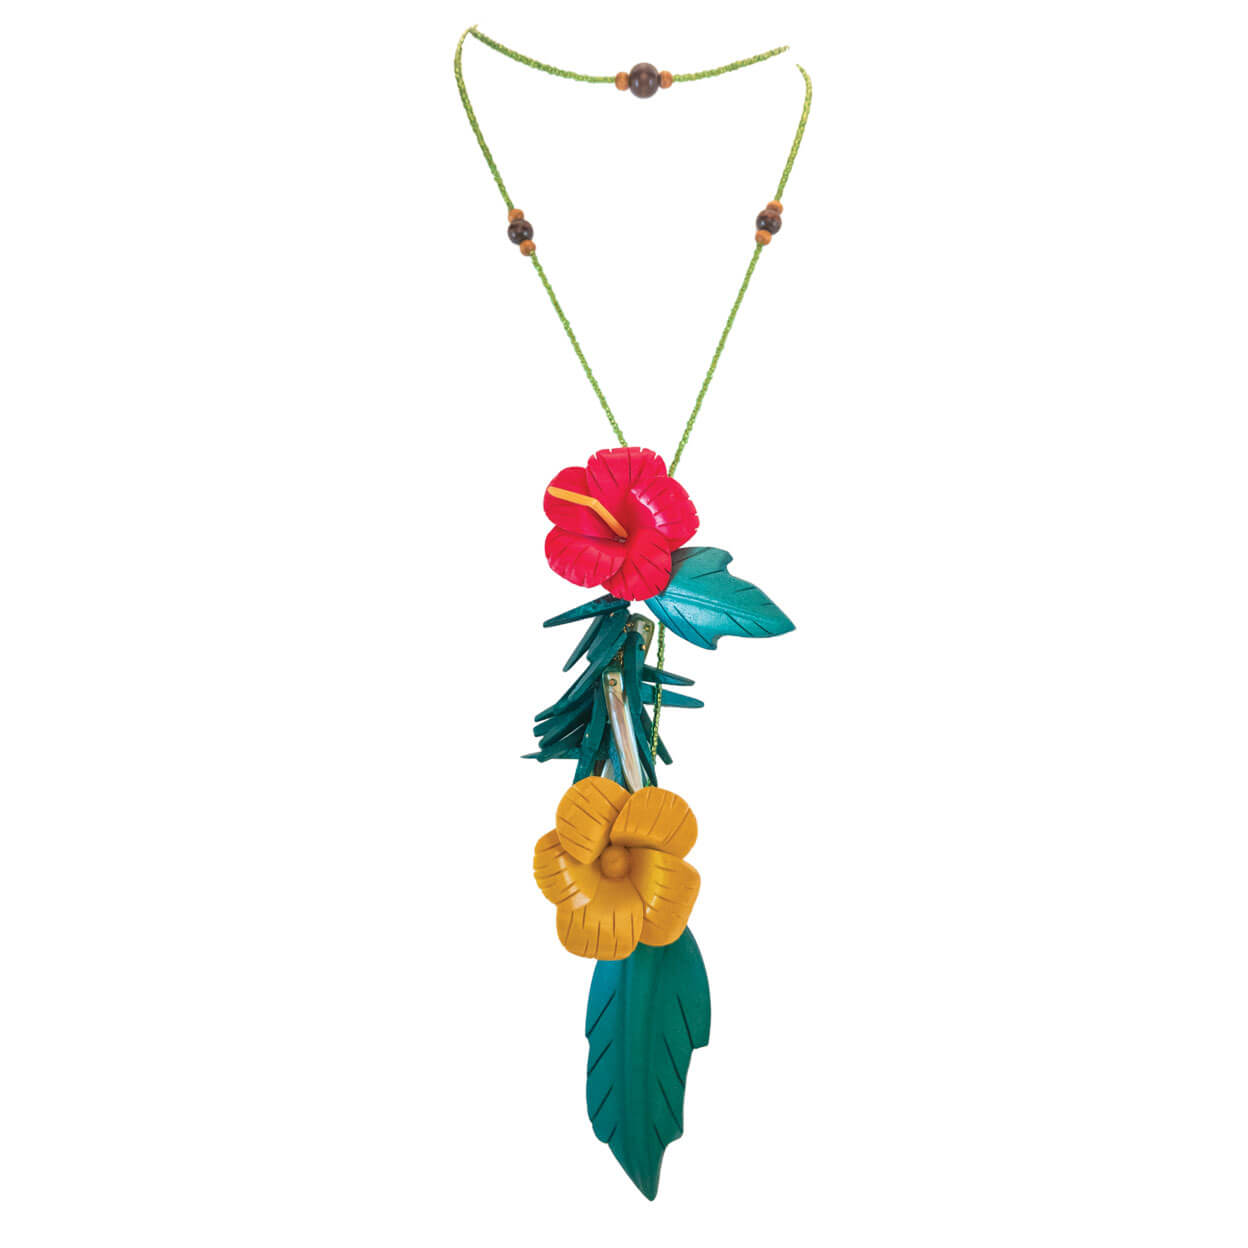 tropical wrap style lariat necklace with two vintage hibiscus flowers and leaves, in red & yellow with green beads